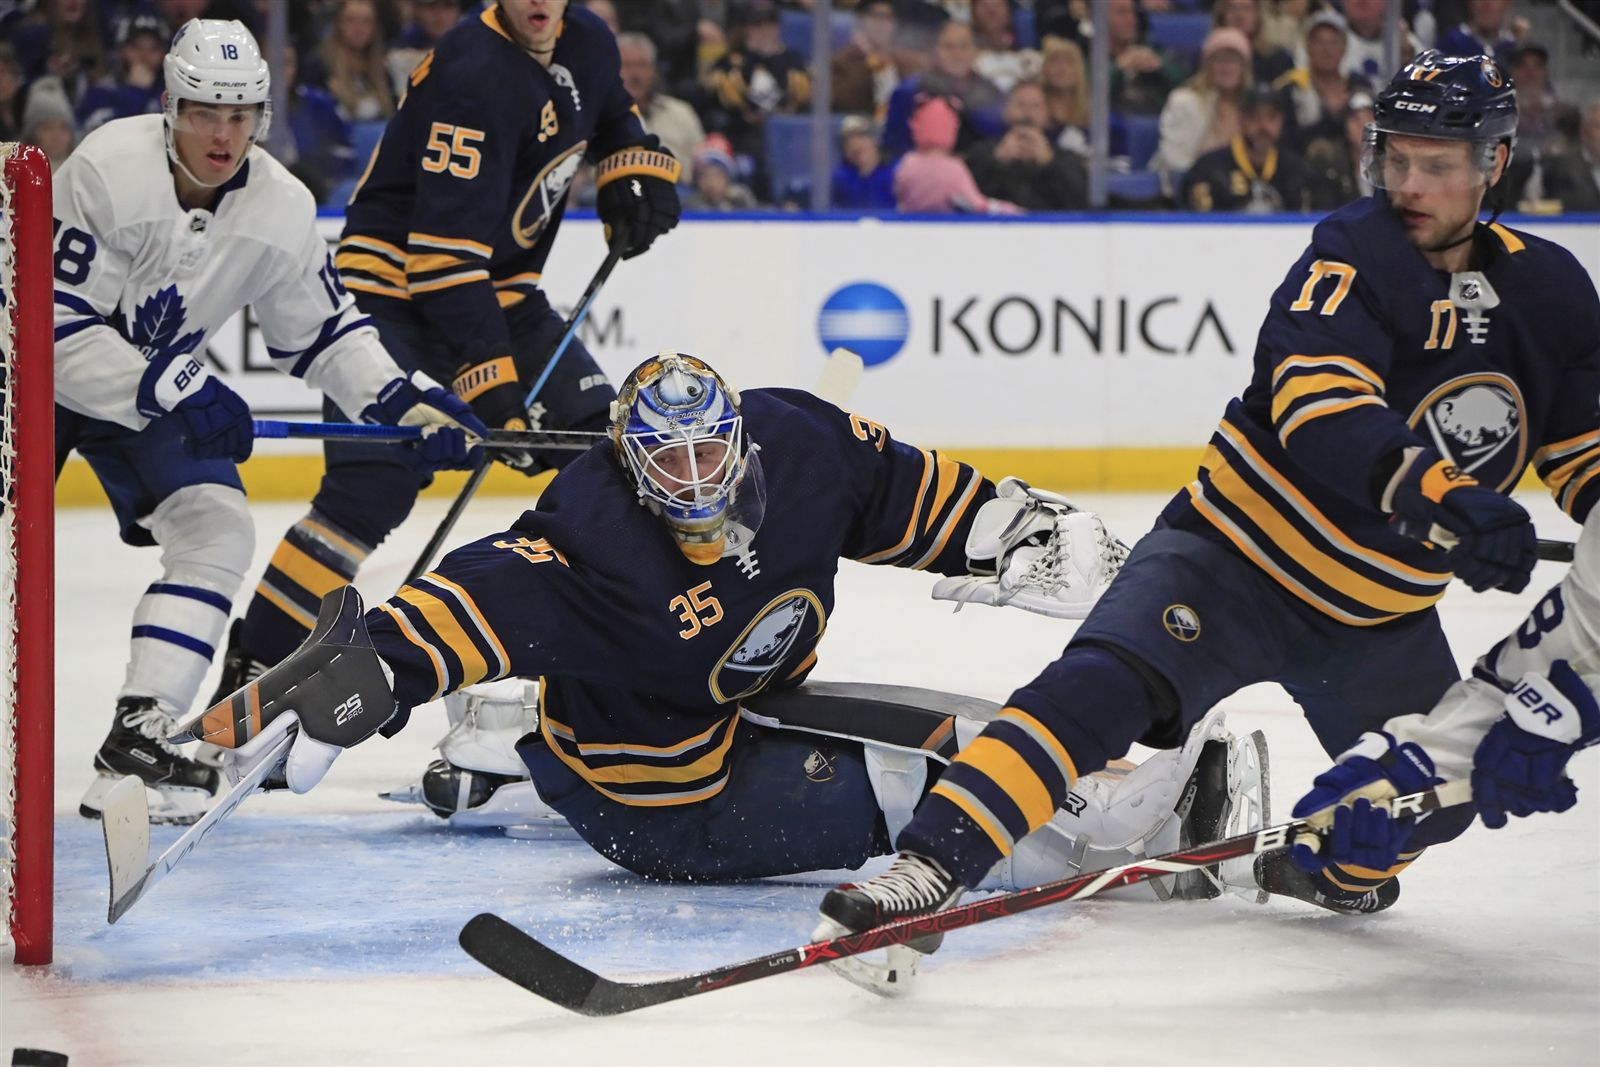 Buffalo Sabres goaltender Linus Ullmark makes a save on the Toronto Maple Leafs during second period action.